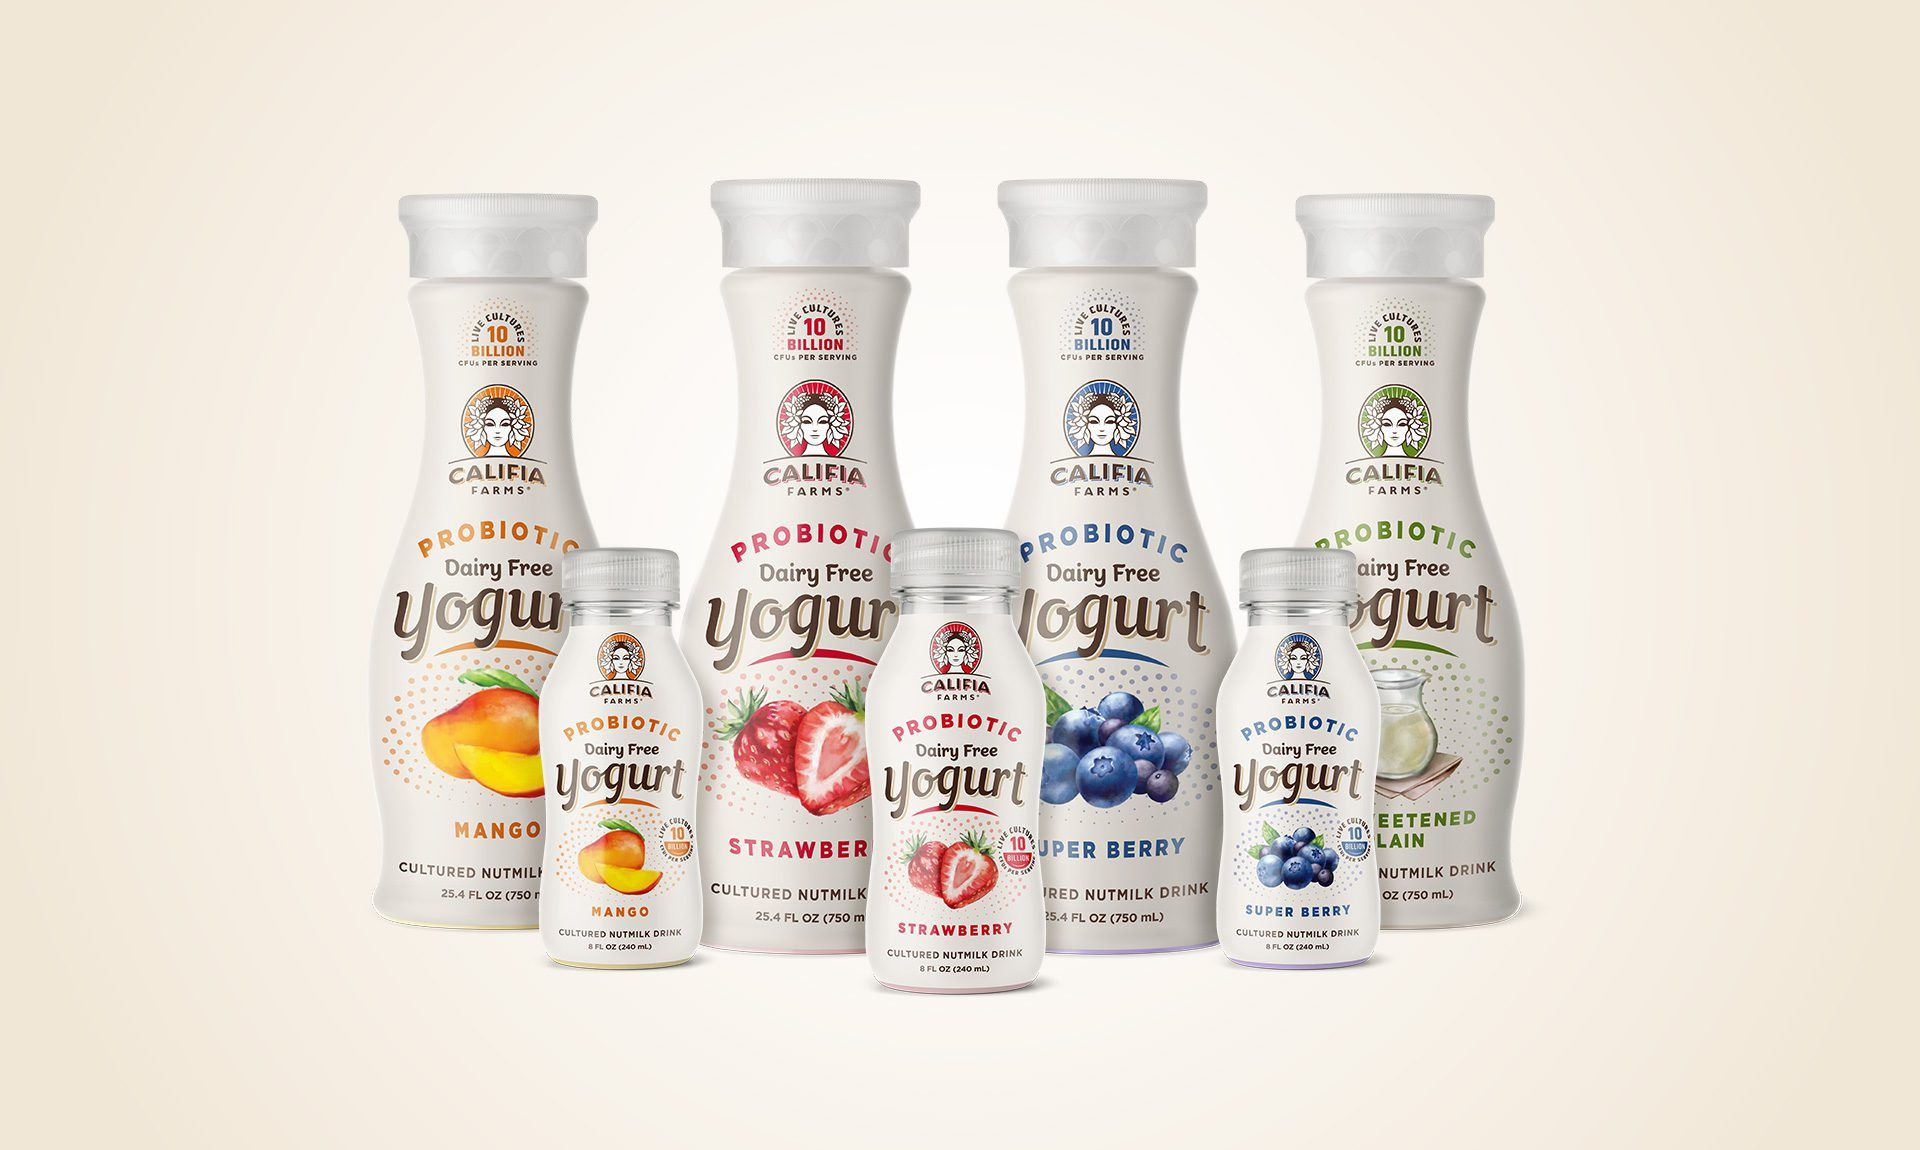 Califia Probiotic Yogurts Packaging Design